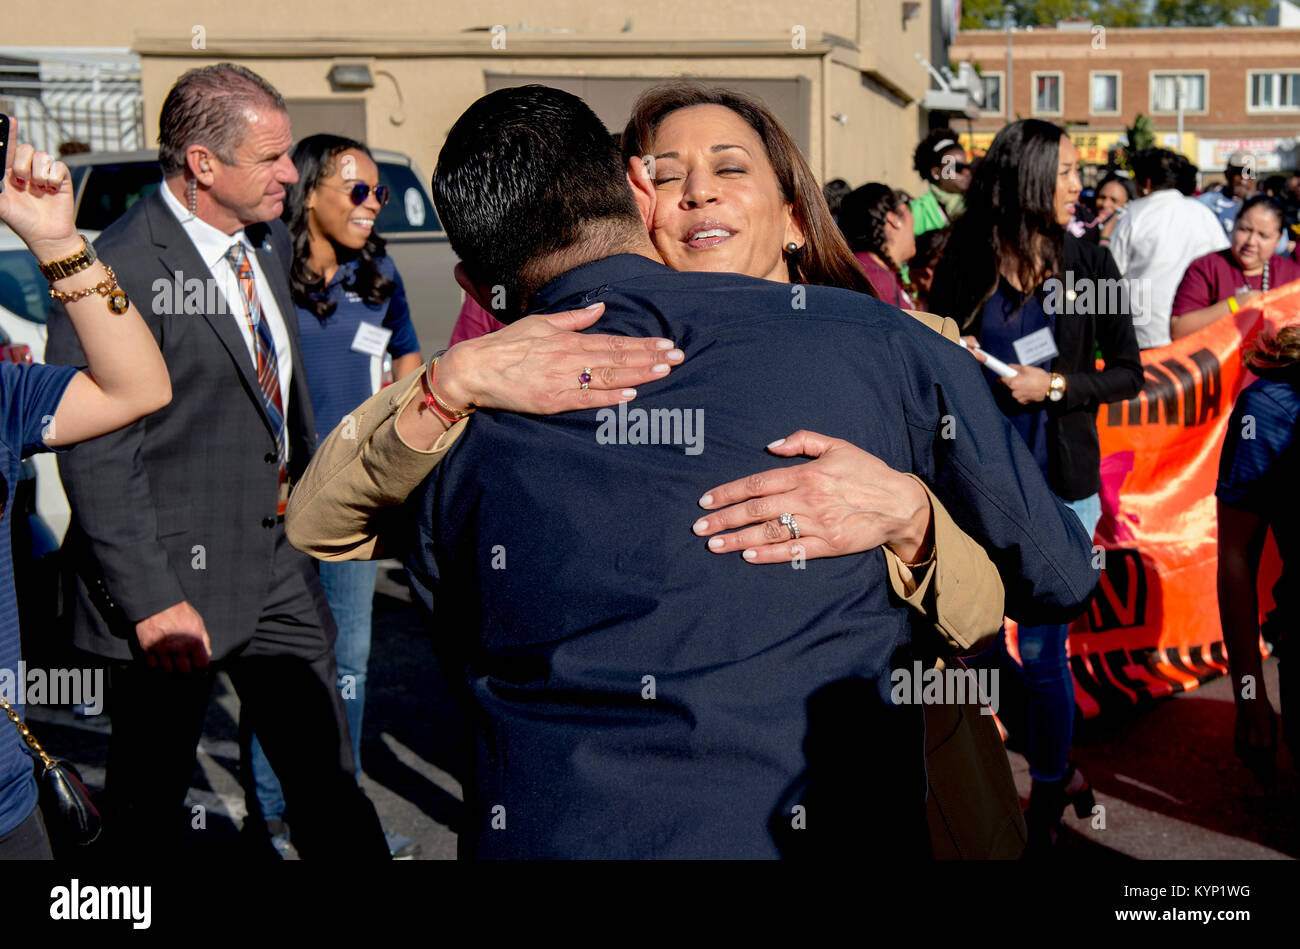 Los Angeles, California, USA. 15th Jan, 2018. U.S. Senator KAMALA HARRIS (D - CA), the Grand Marshal of the Los - Stock Image